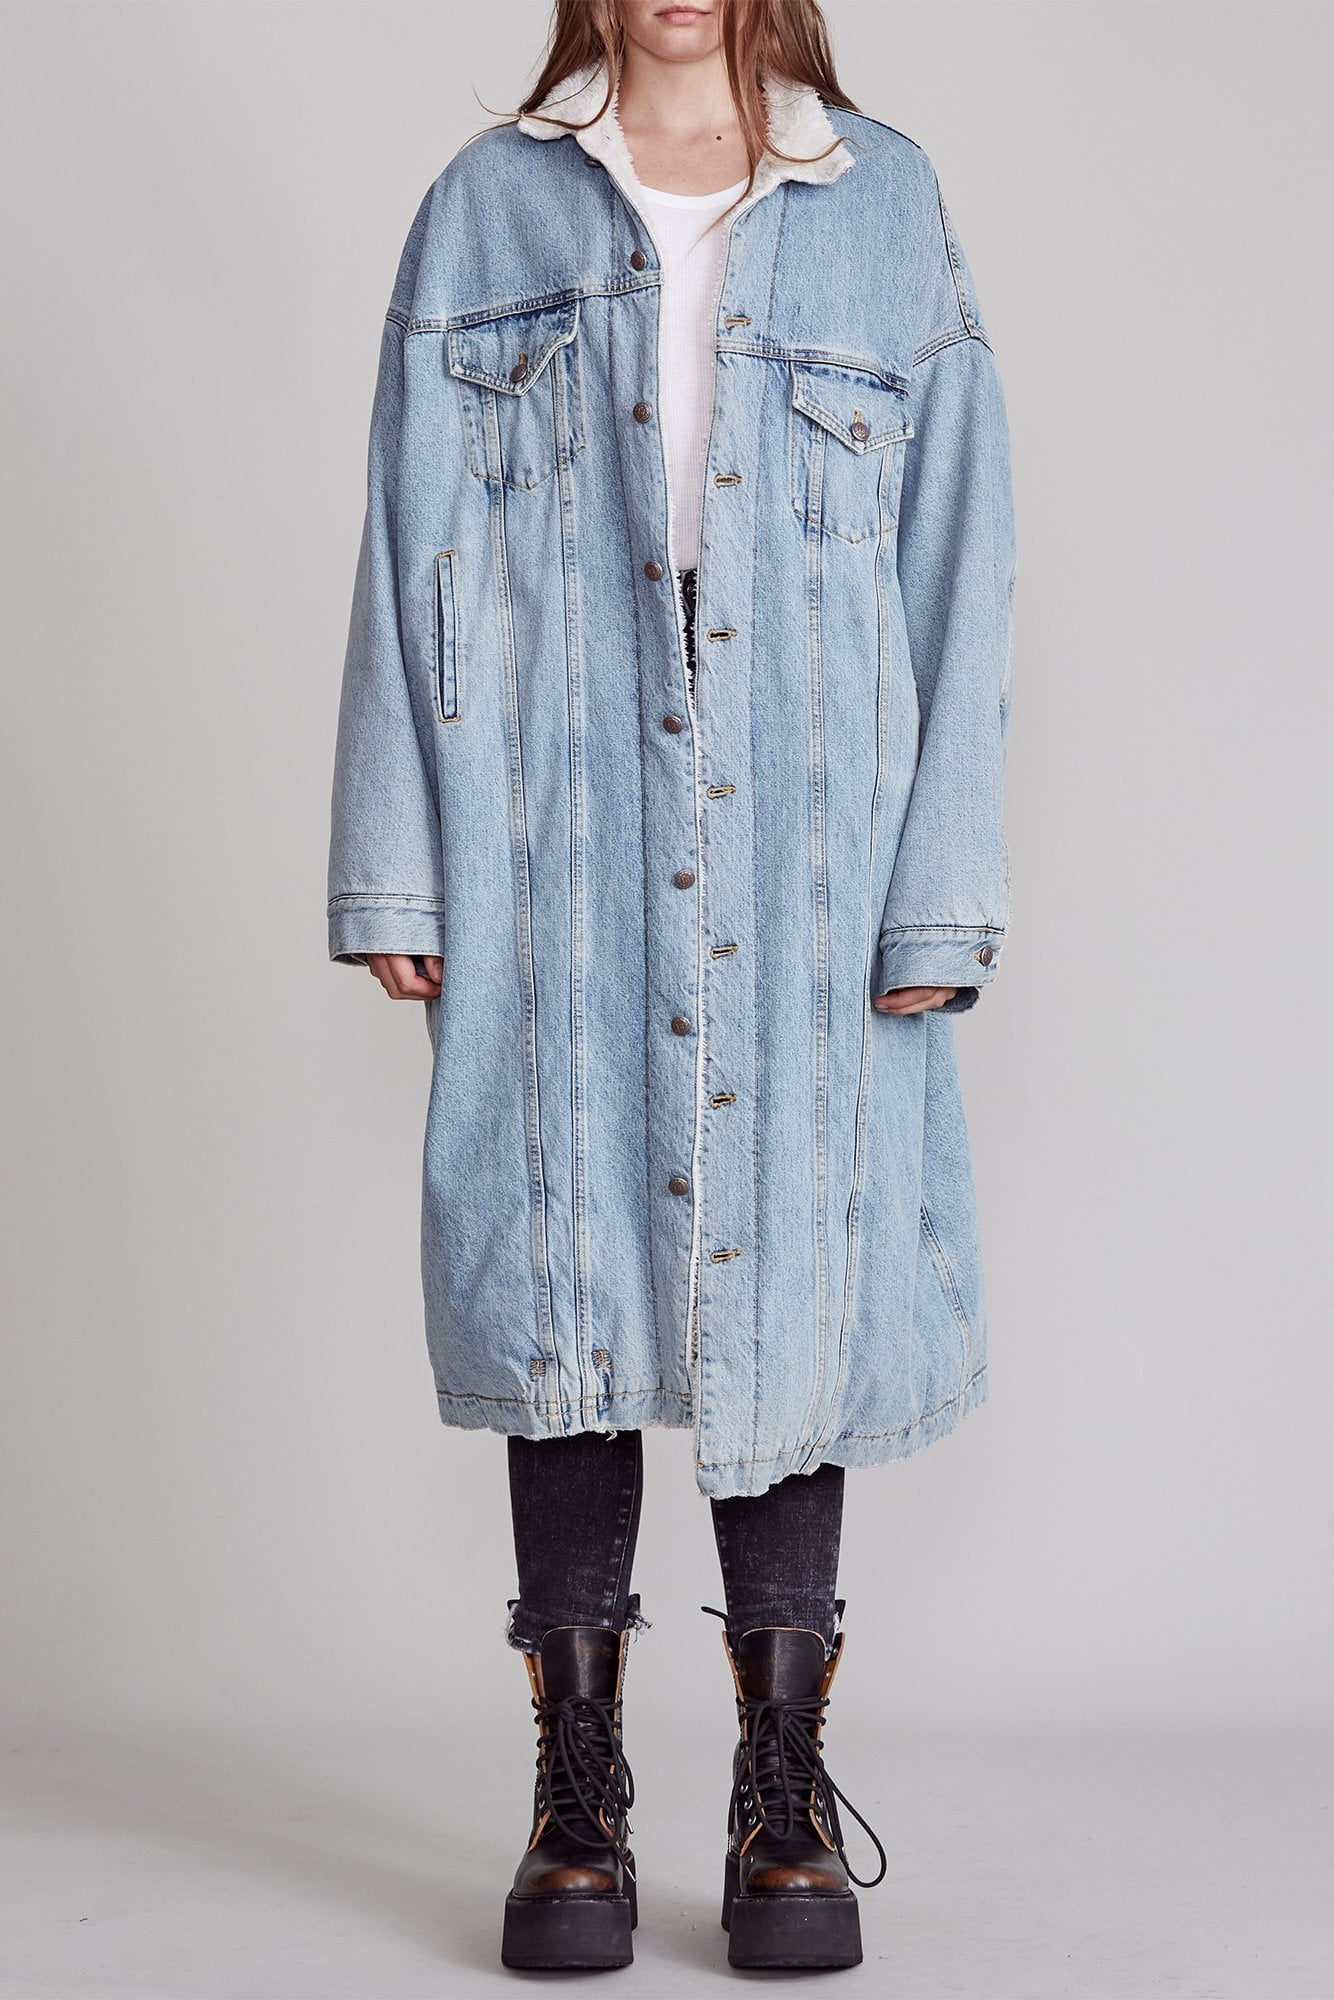 Lyle Trucker Coat - Slate Blue